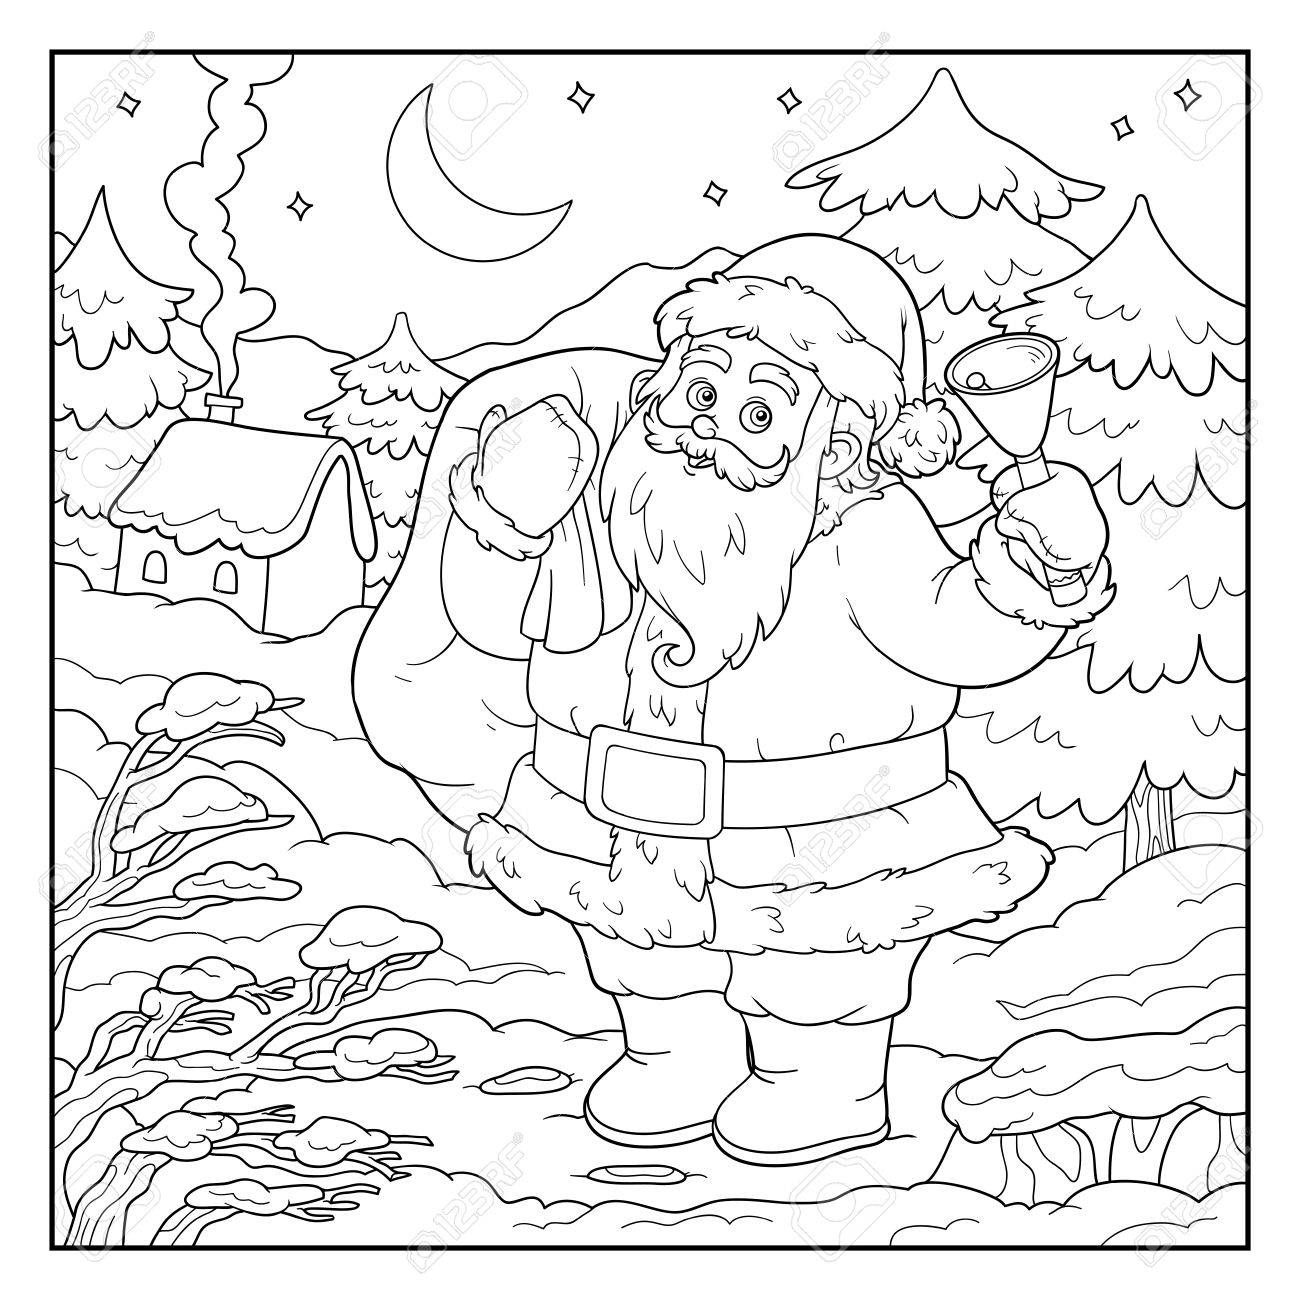 Coloring Book, Game For Children: Santa Claus And Night Forest ...